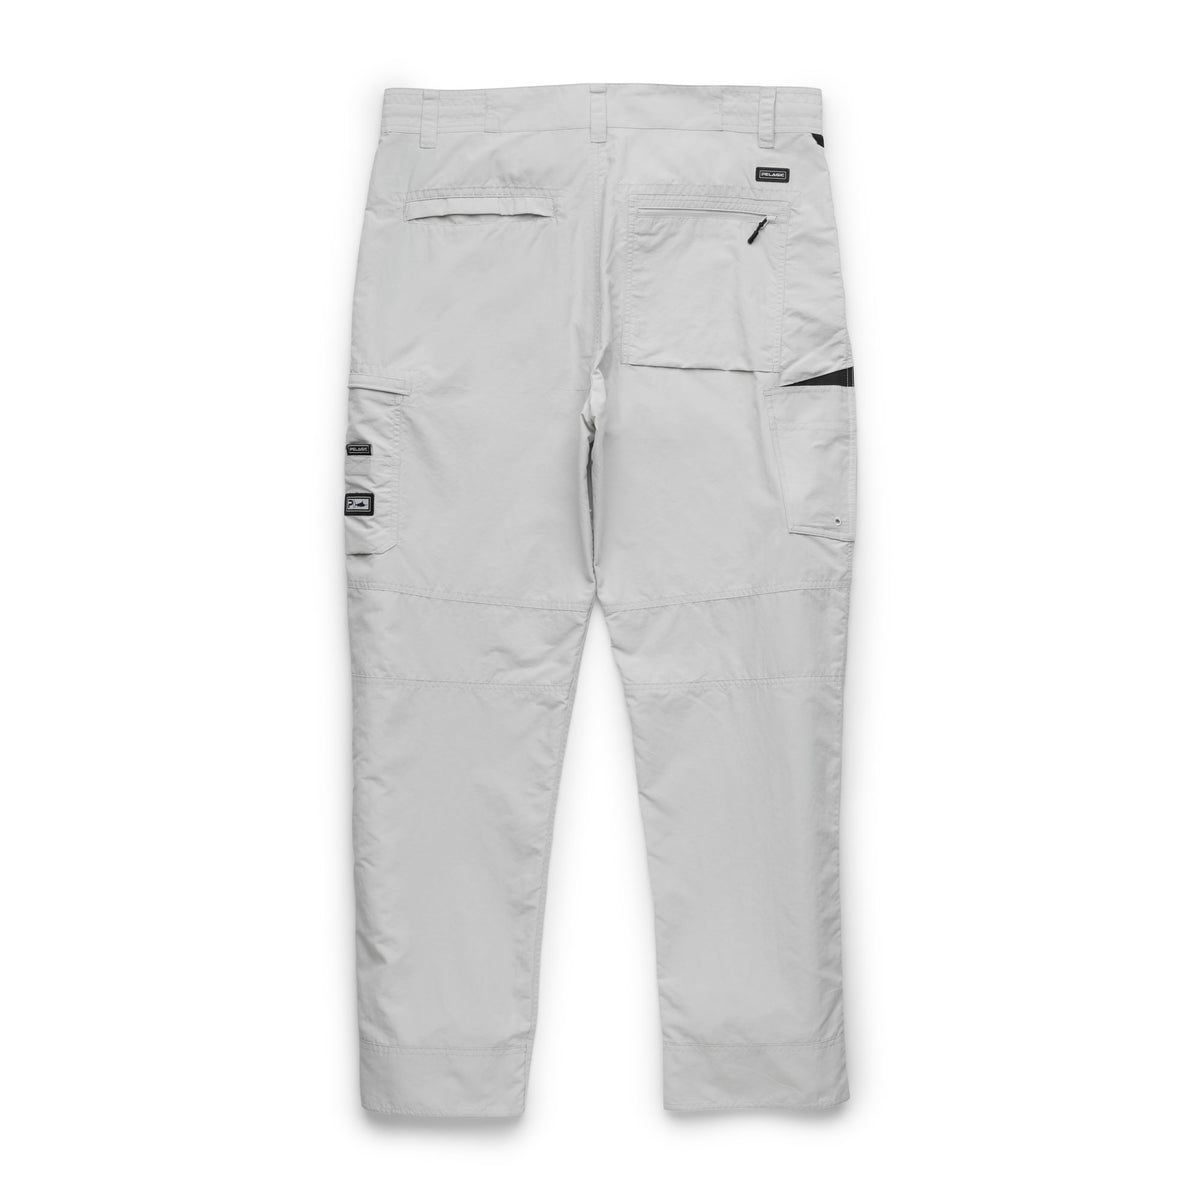 Tropical Fishing Pant Big Image - 2